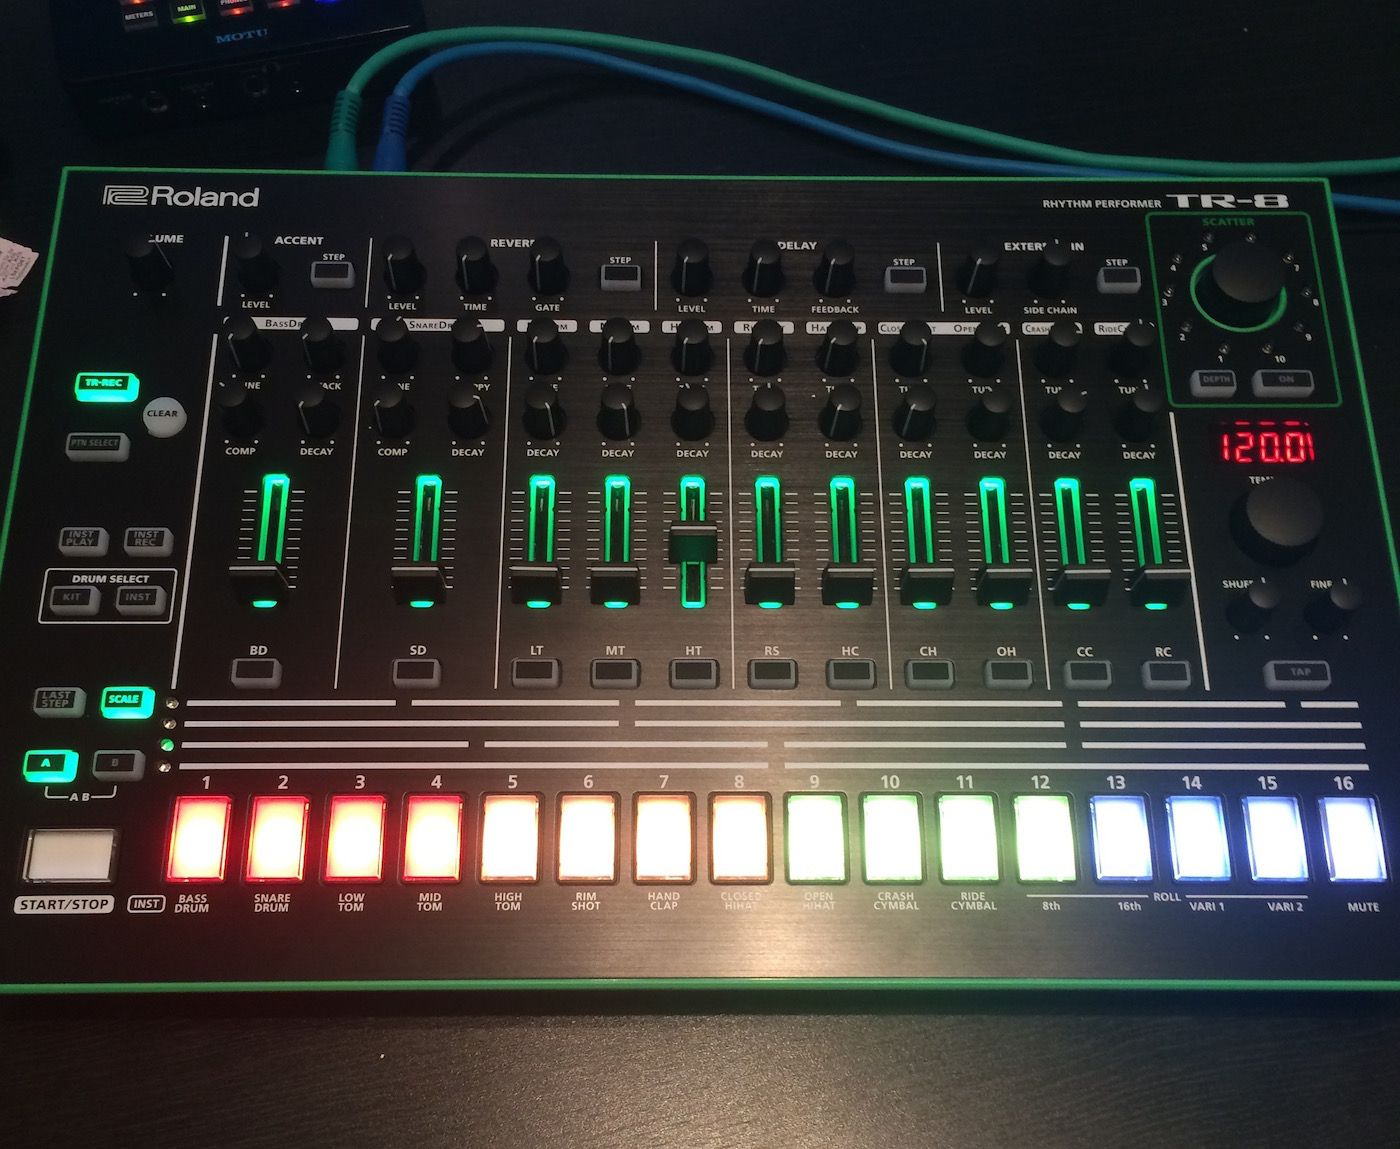 Whistle Back programmed the drums for his remix using the Roland AIRA TR-8.